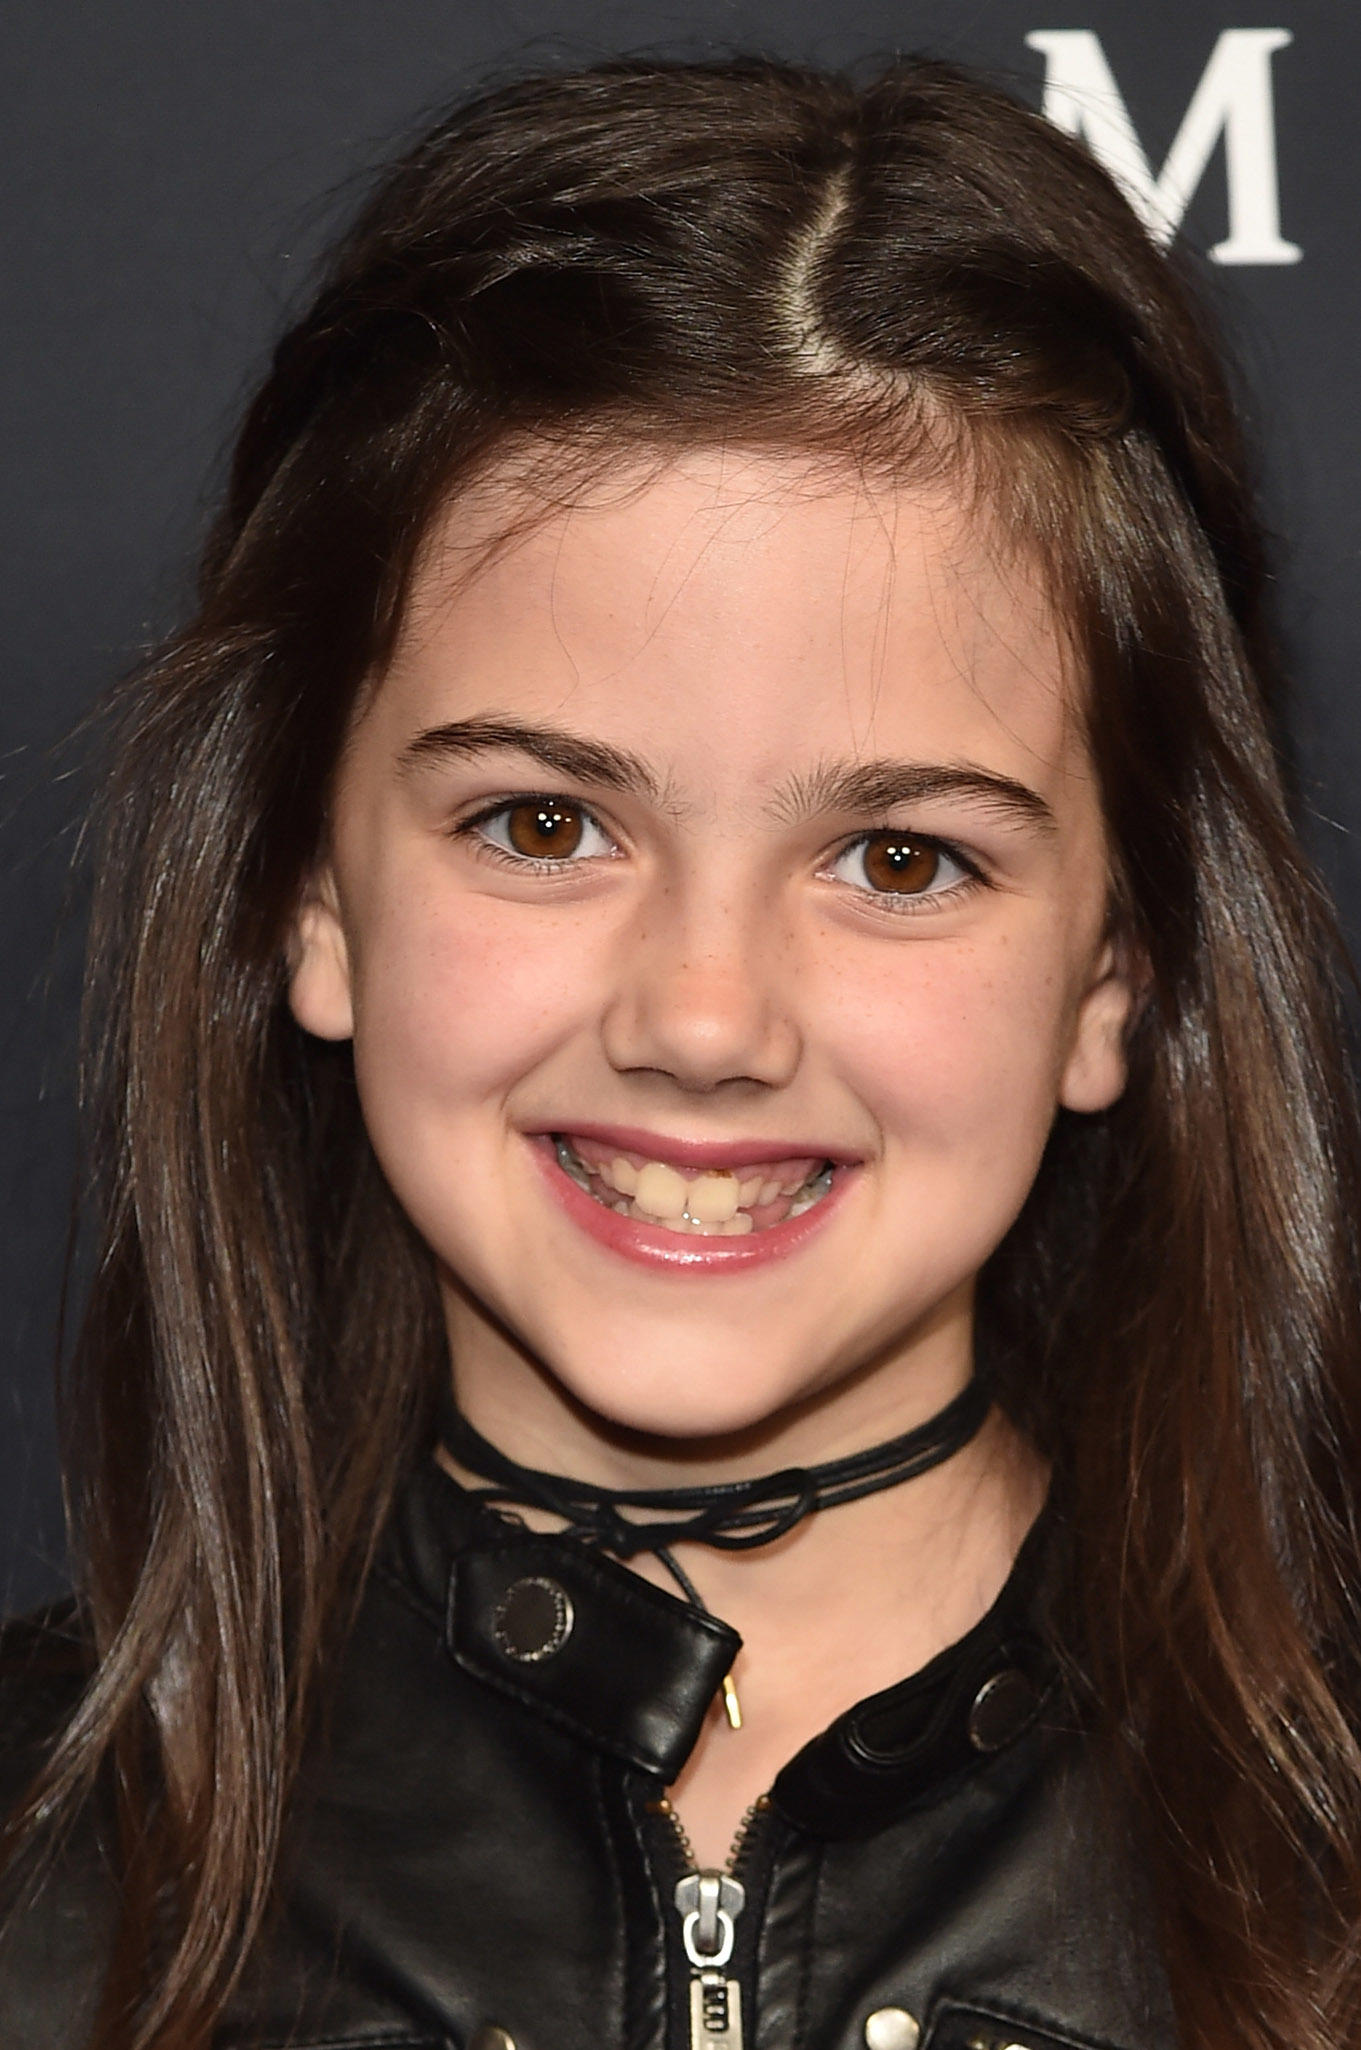 Abby Ryder Fortson at the premiere of